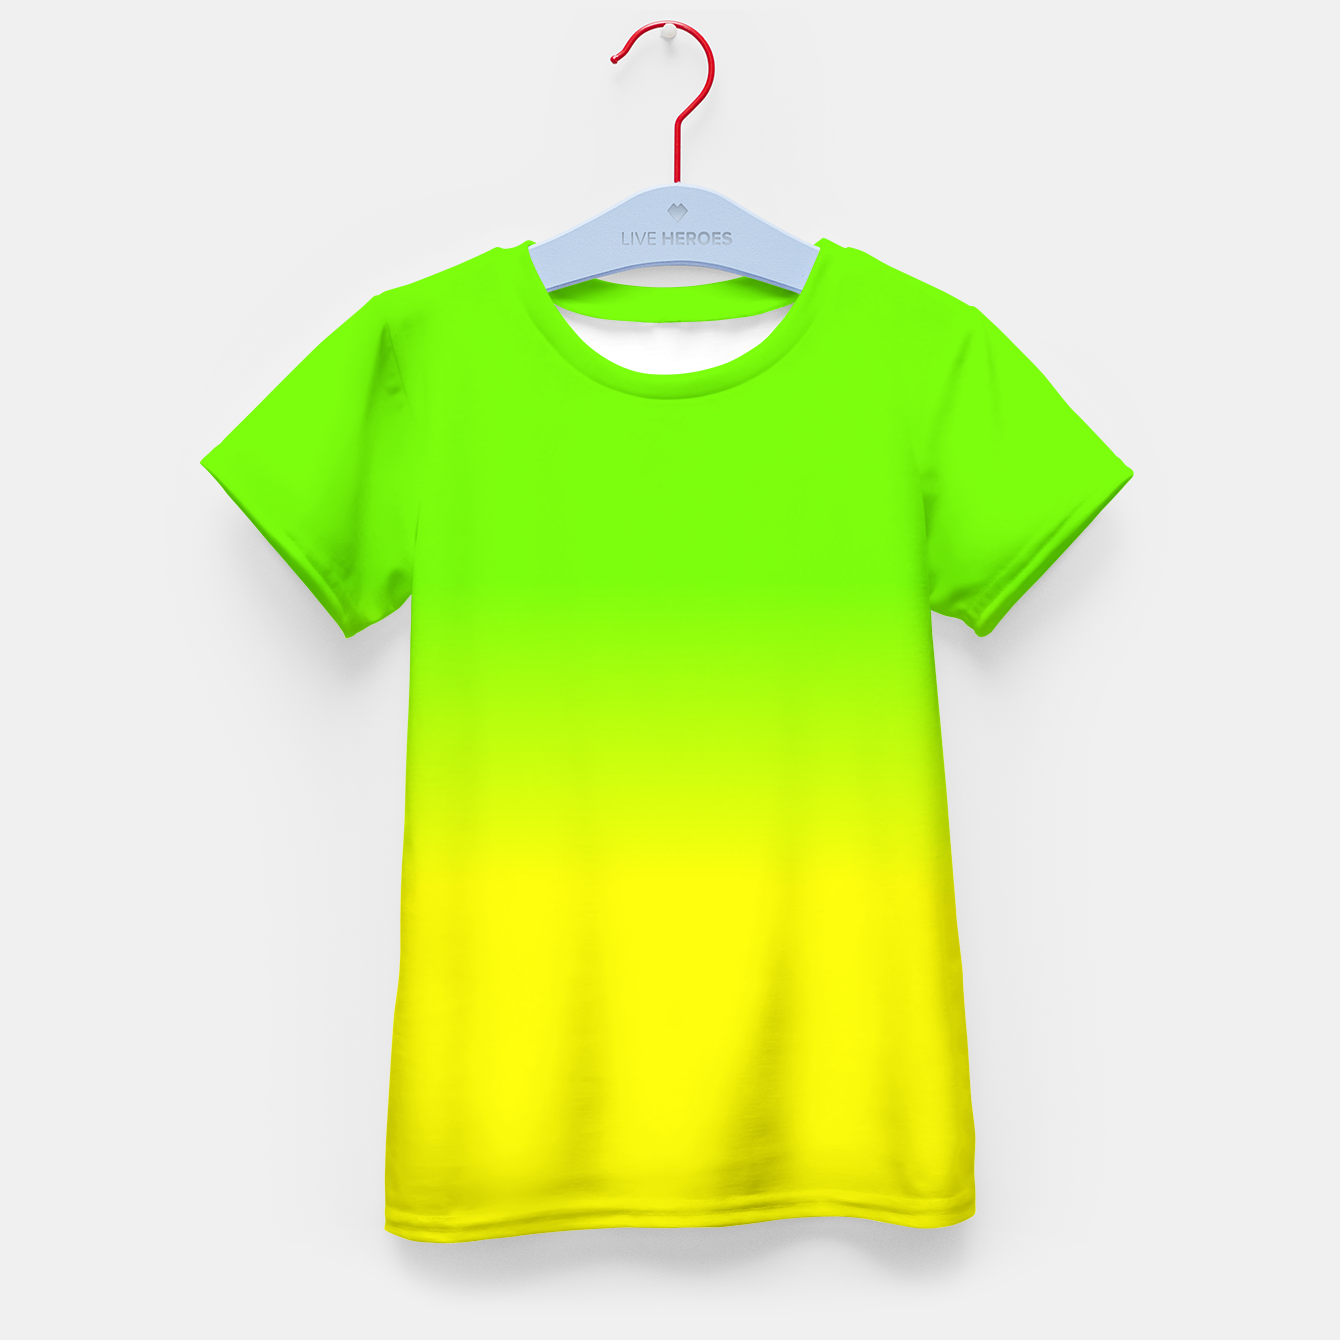 Neon Green and Neon Yellow Ombré Shade Color Fade Kid\'s t-shirt ...